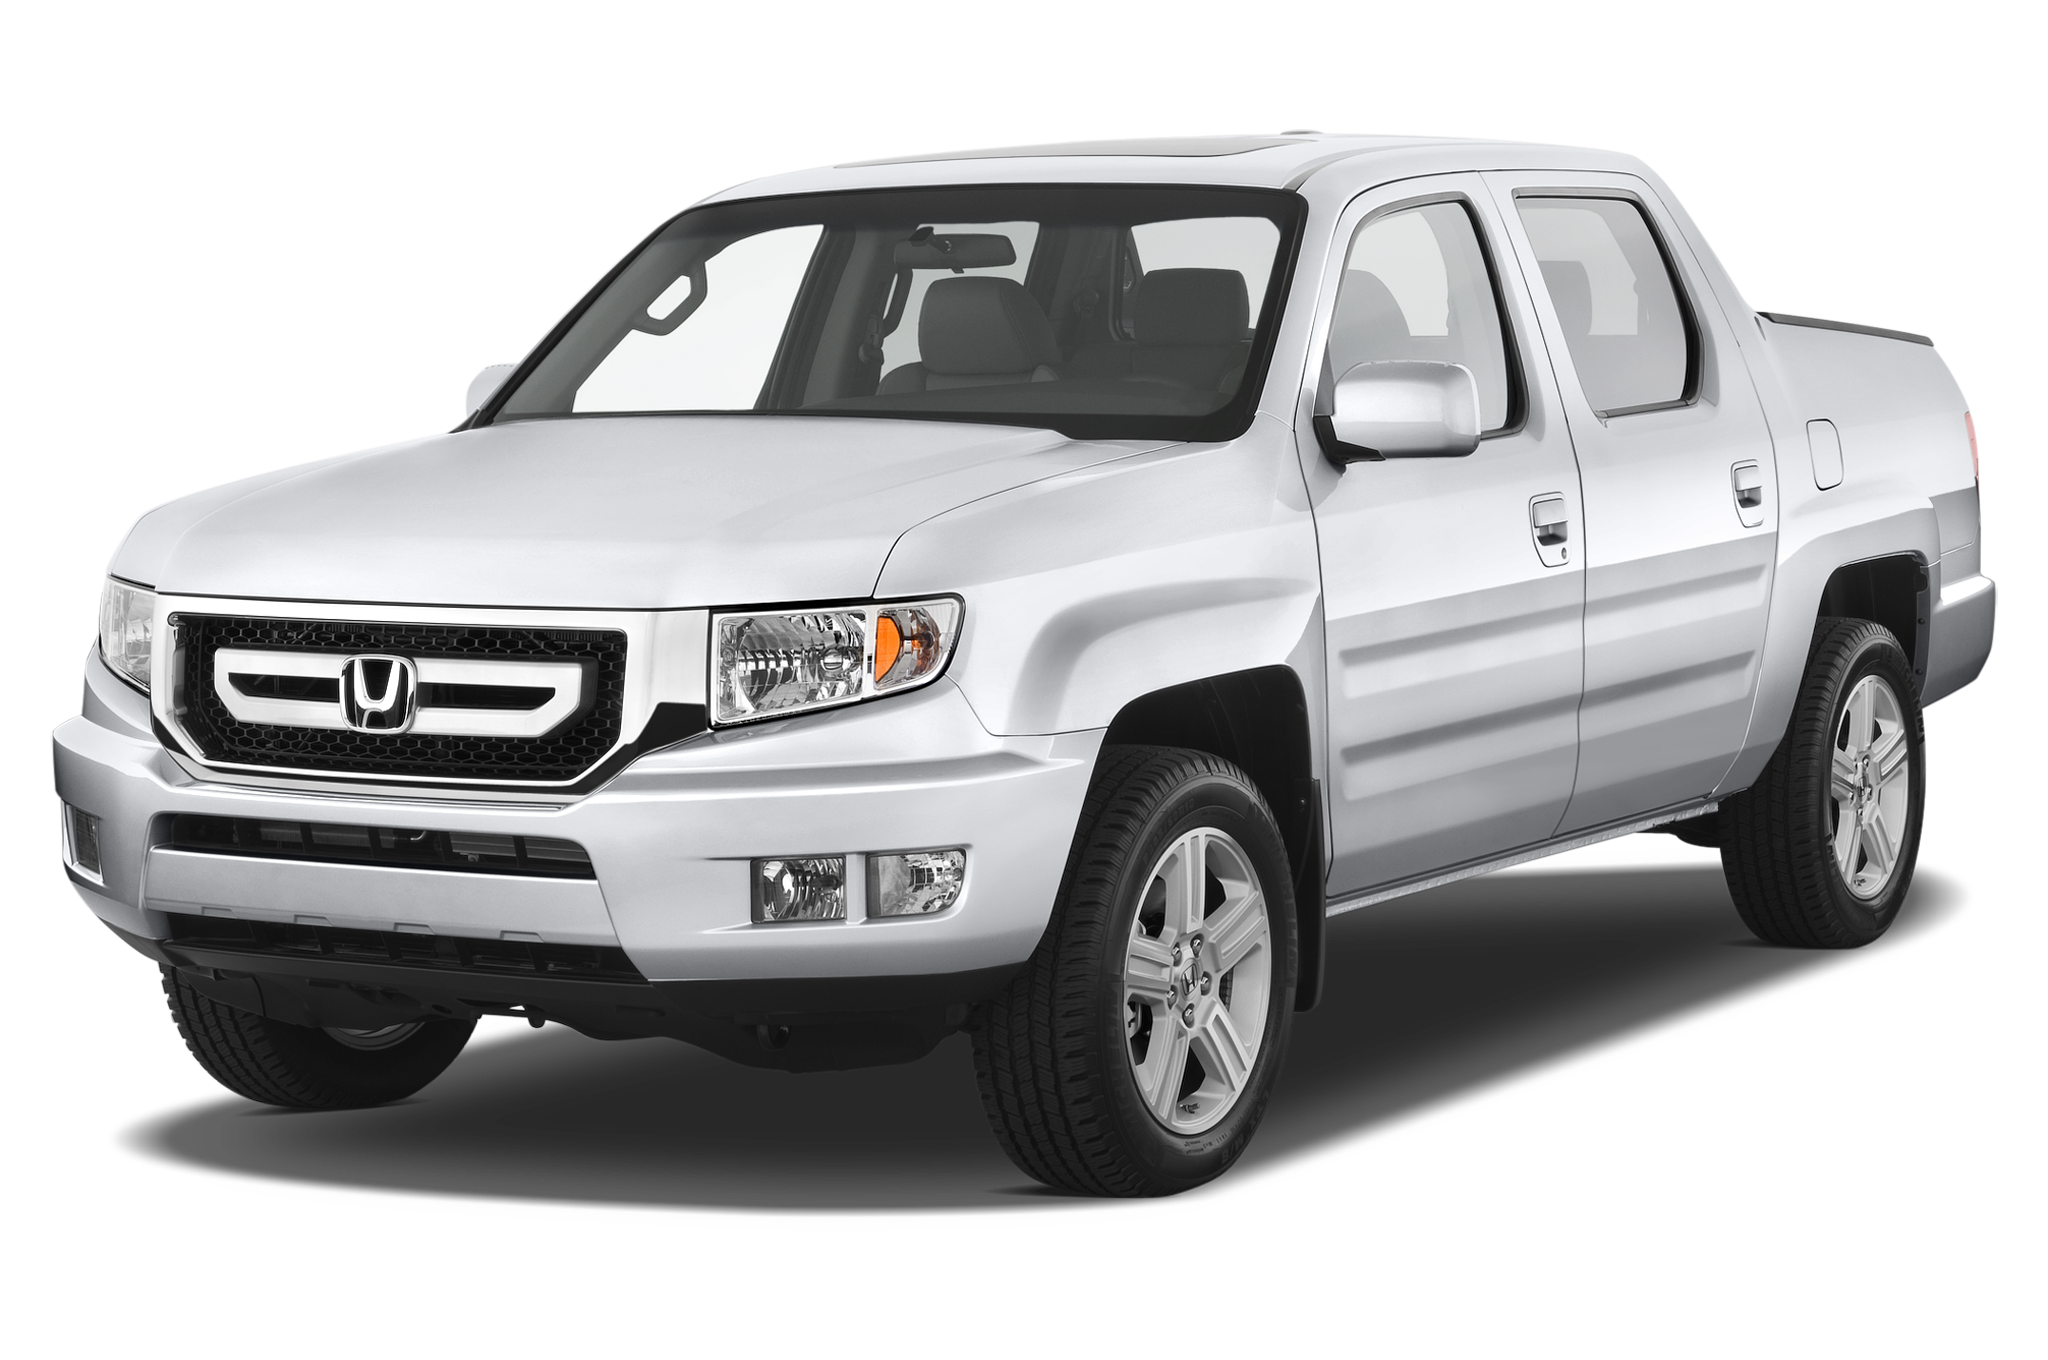 Image Result For Honda Ridgeline Towing Mpg